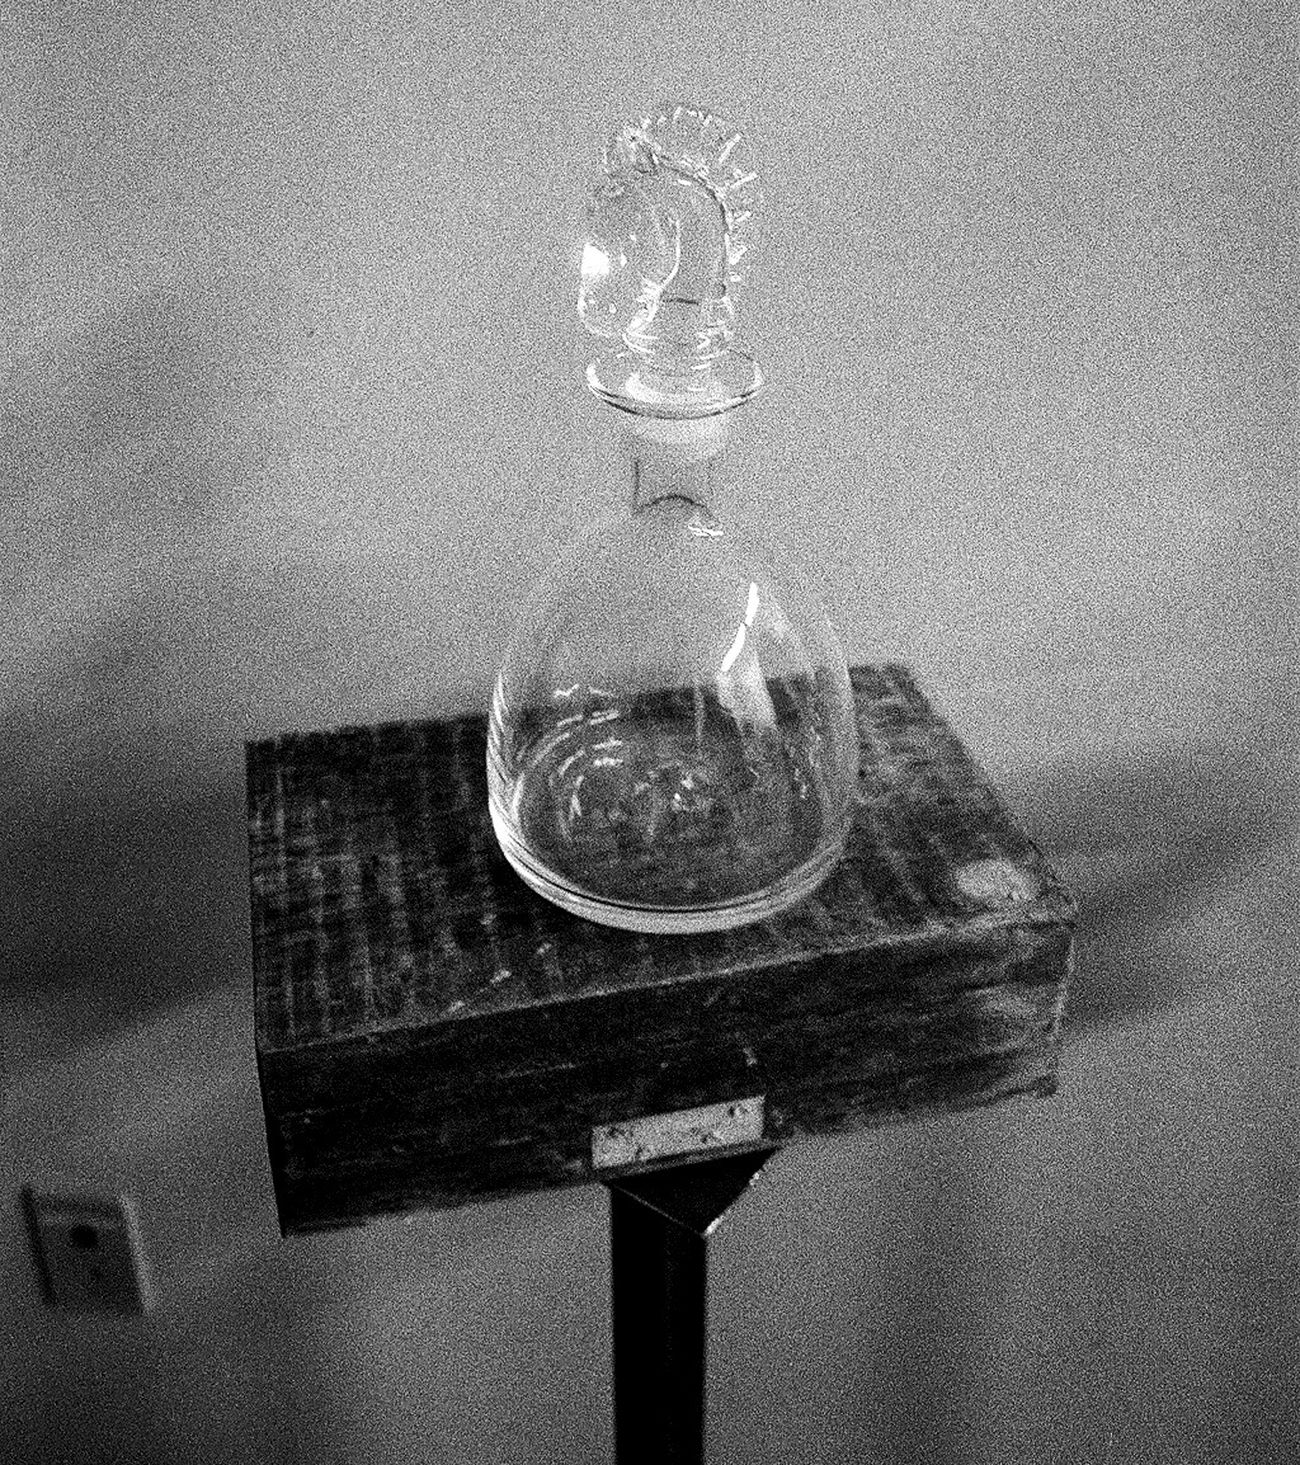 Blk N Wht Film Film Photography Koduckgirl Blown Glass